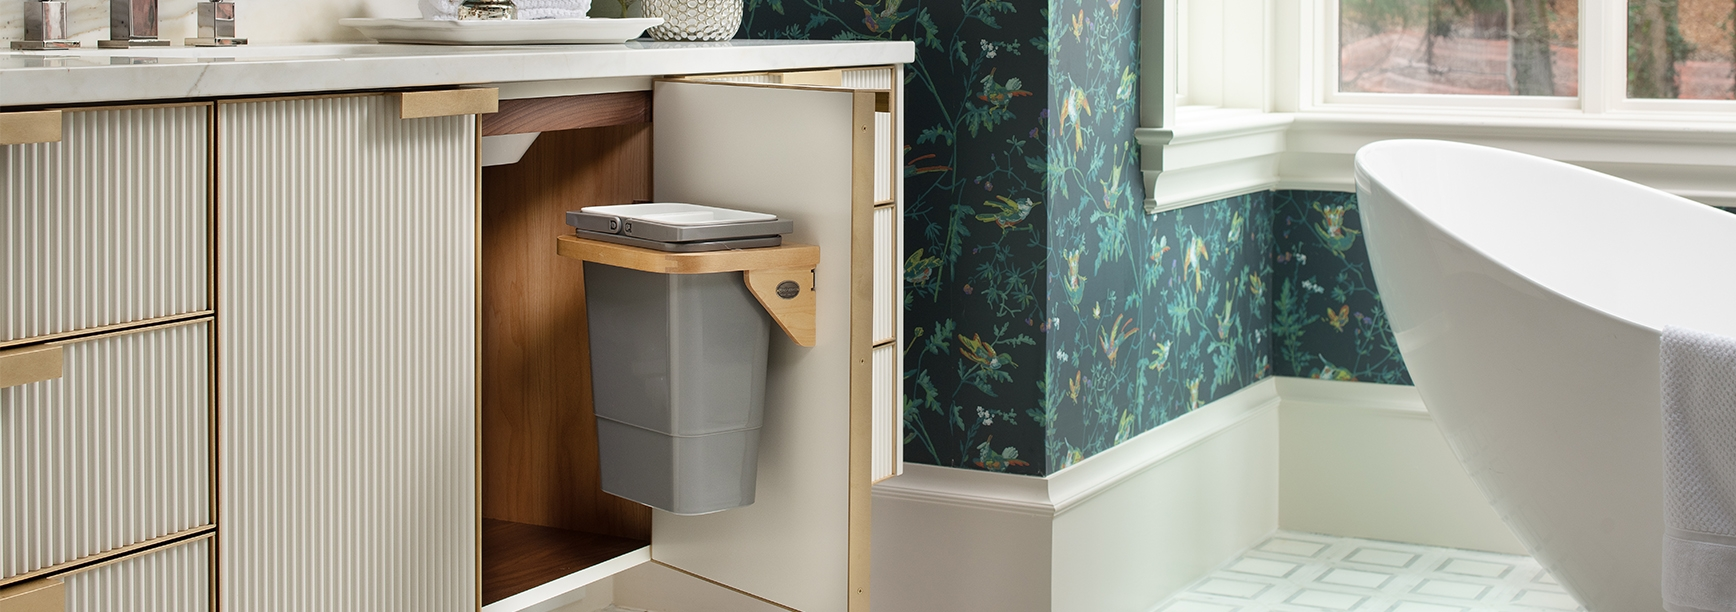 image of bathroom and vanity solution applications